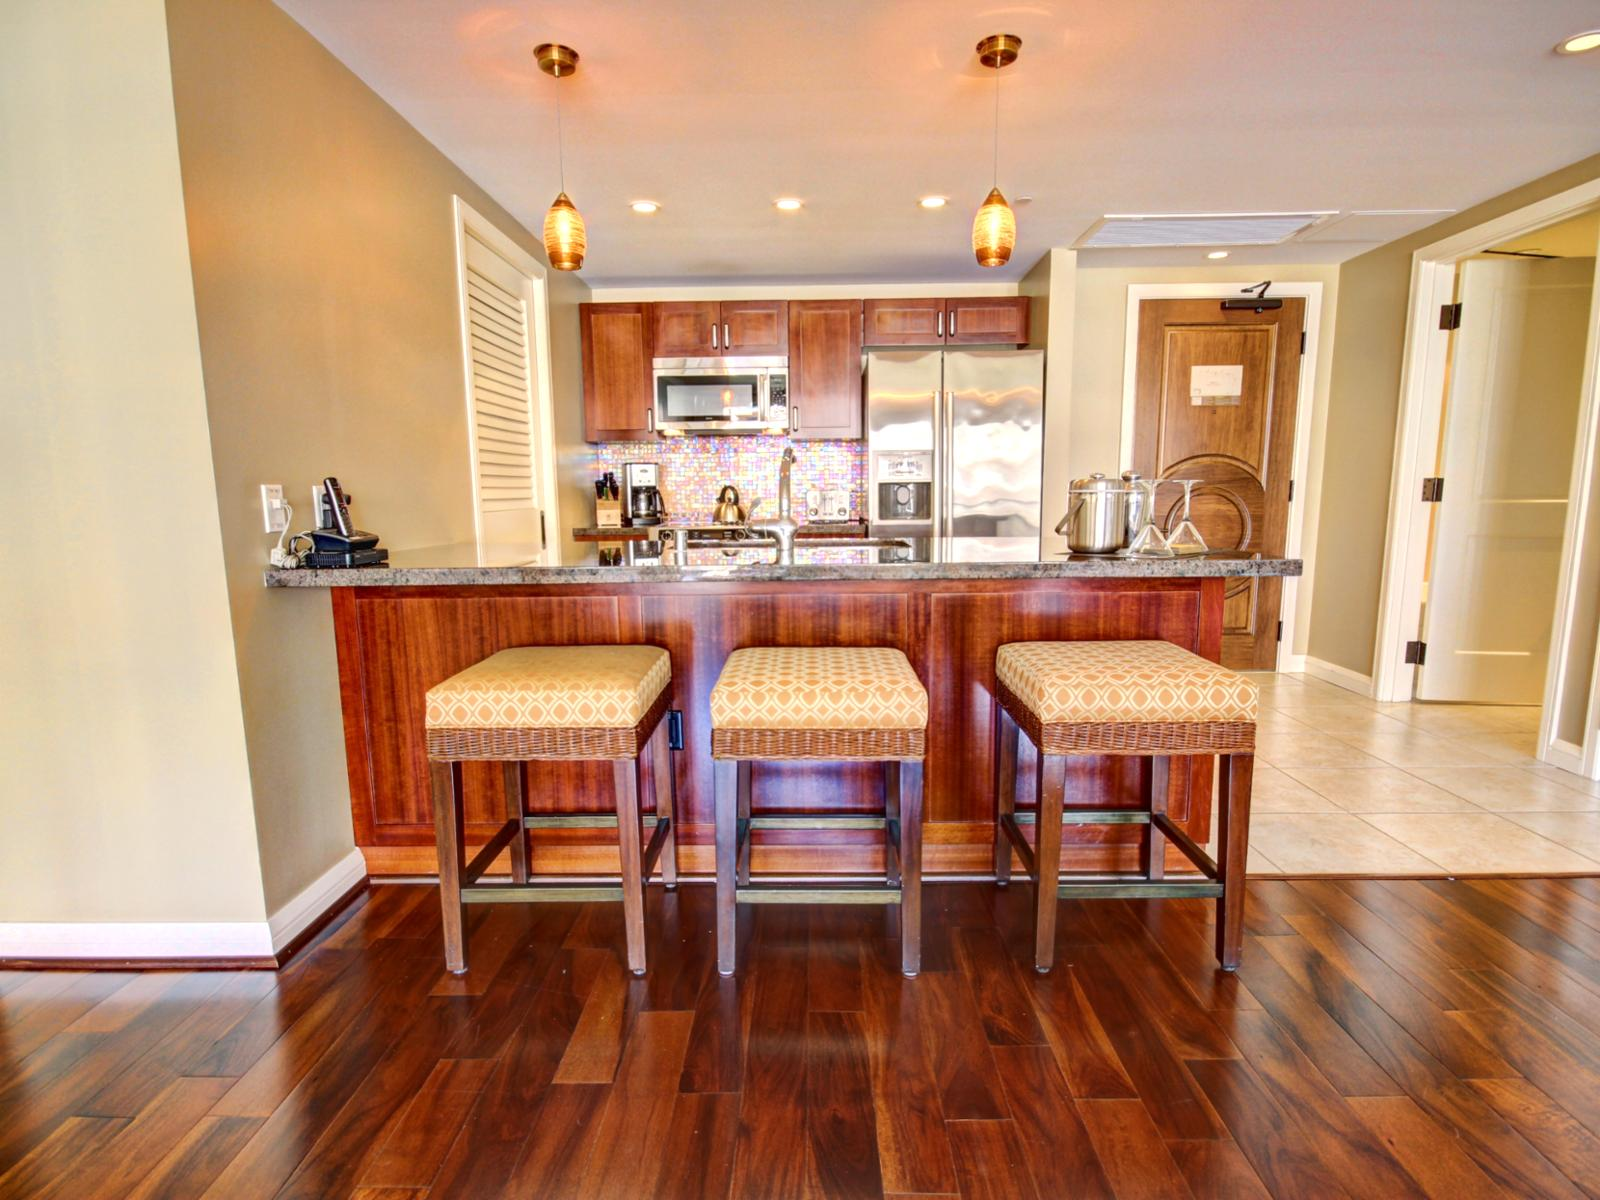 Gourmet kitchen, with bar stools and entrance to the unit.